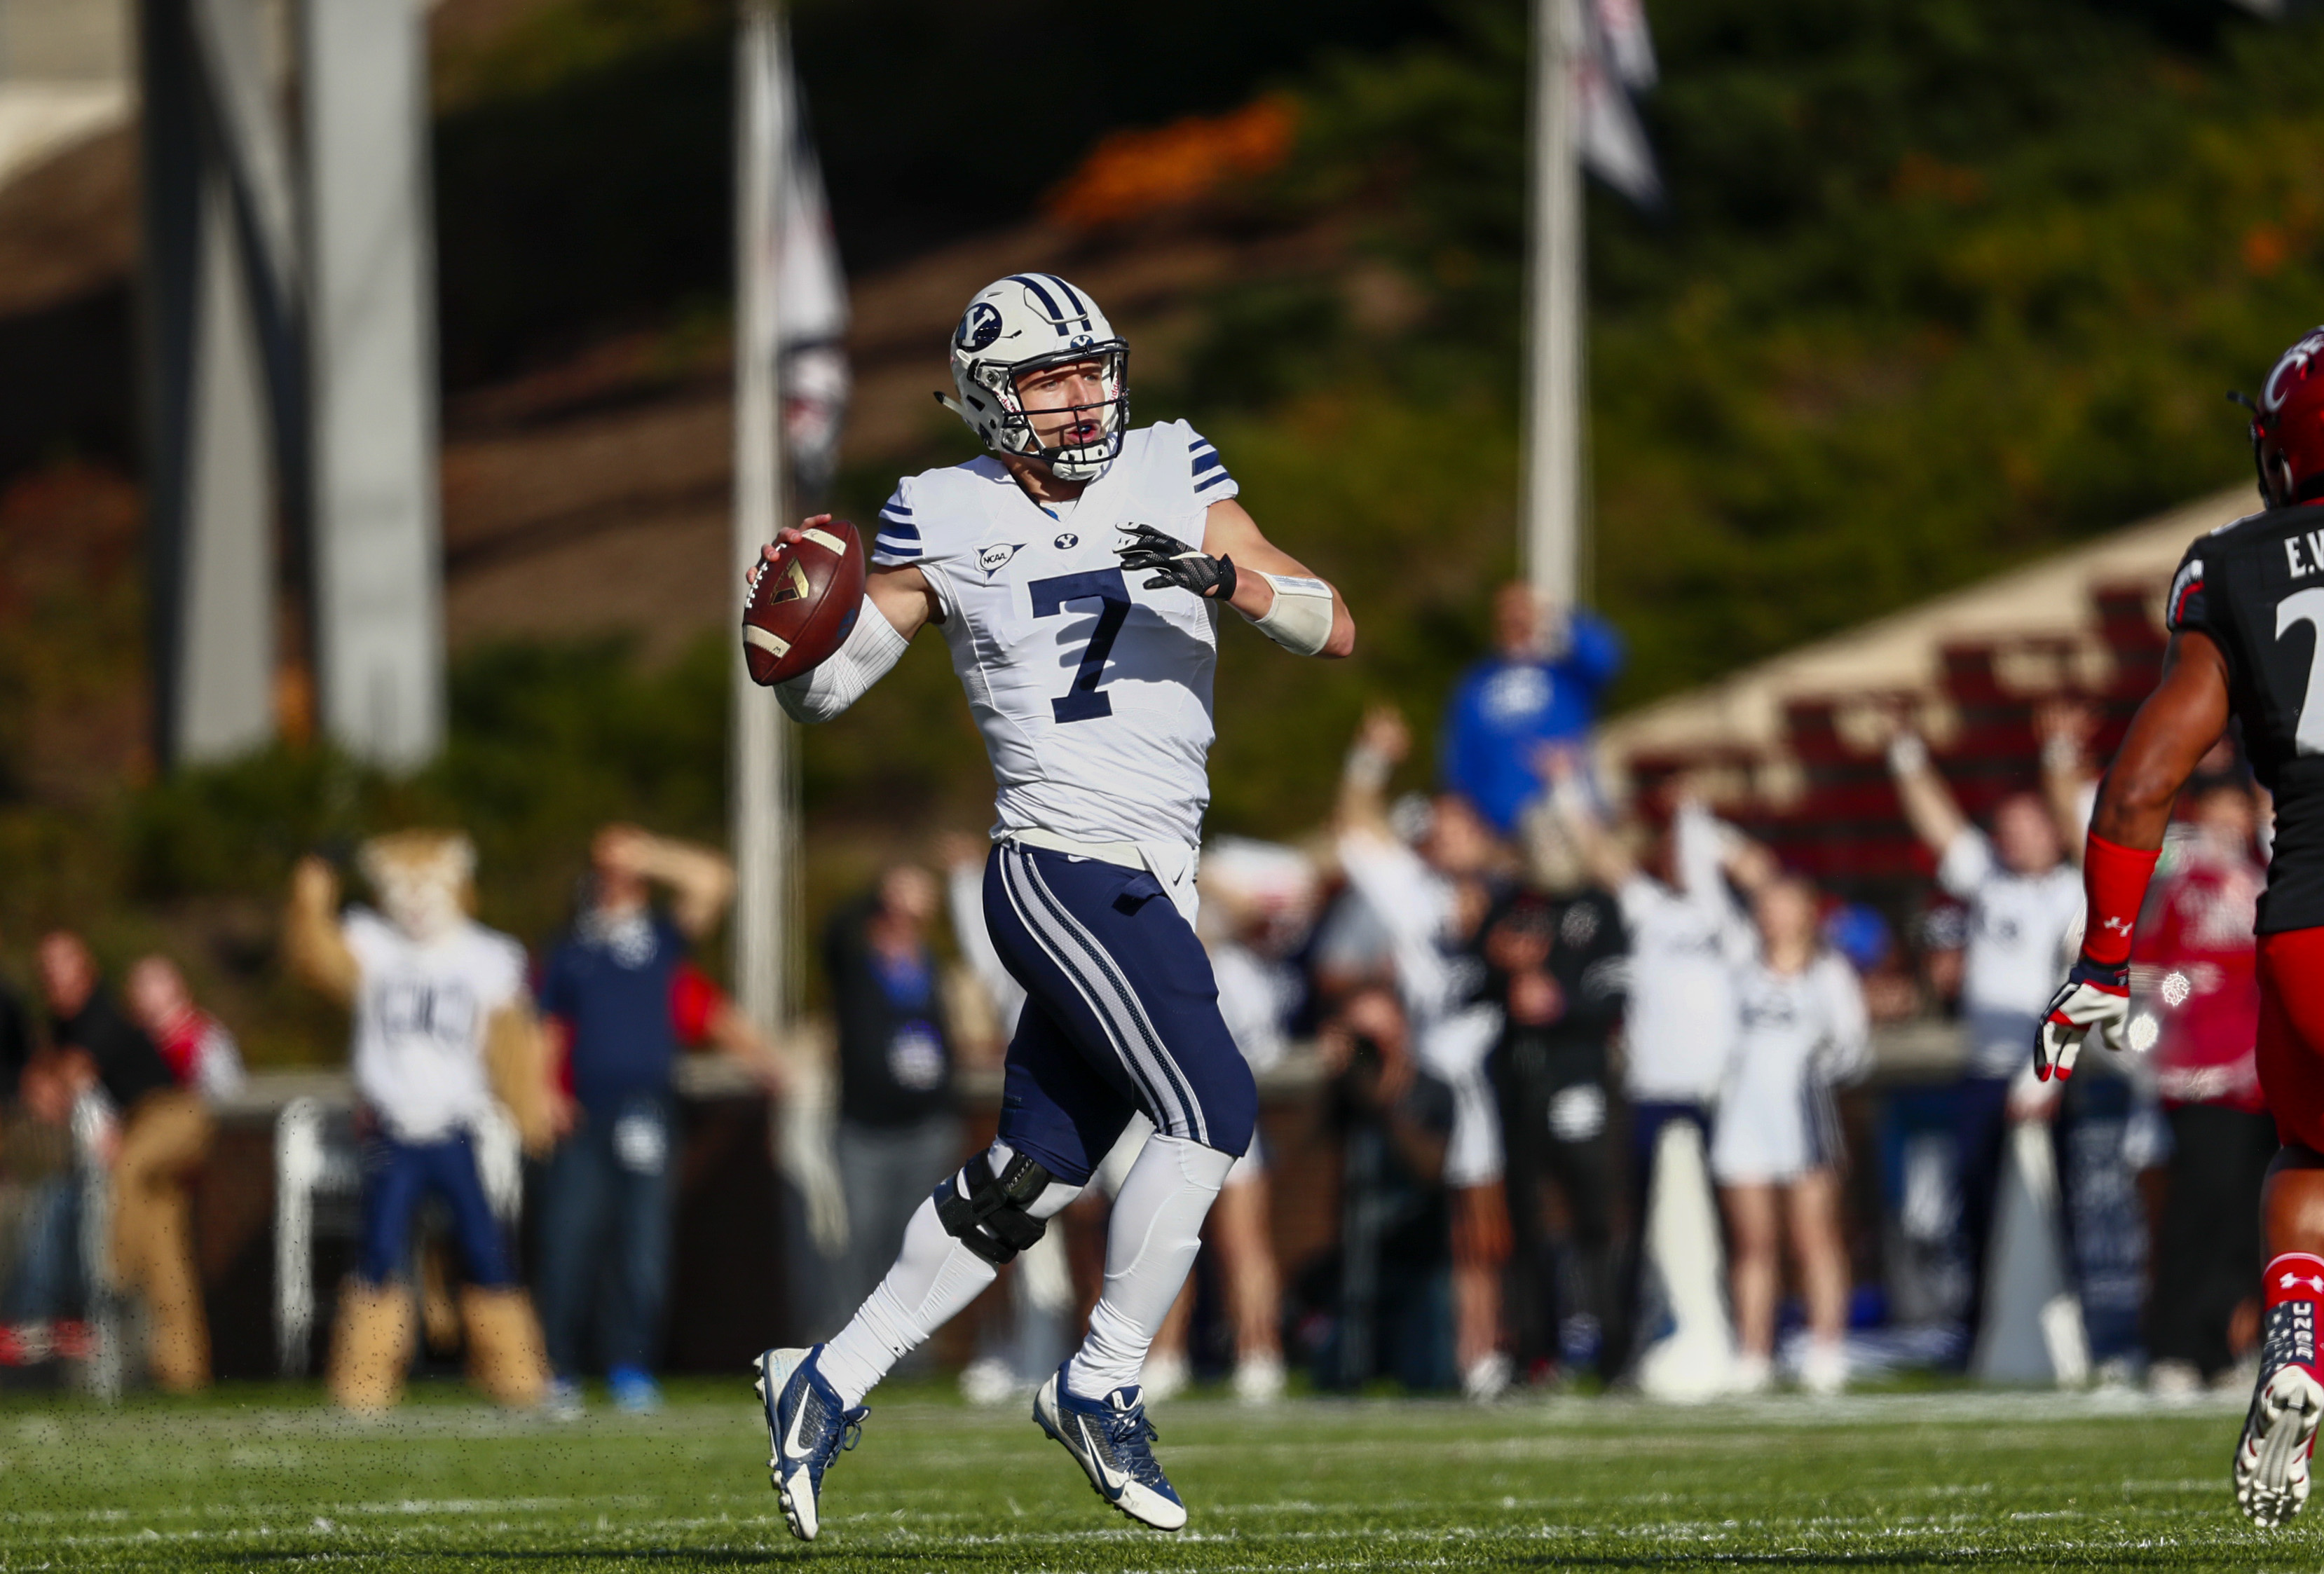 BYU quarterback Taysom Hill scans downfield against Cincinnati. Hill threw for just 130 yards against the Bearcats. (BYU Photo)